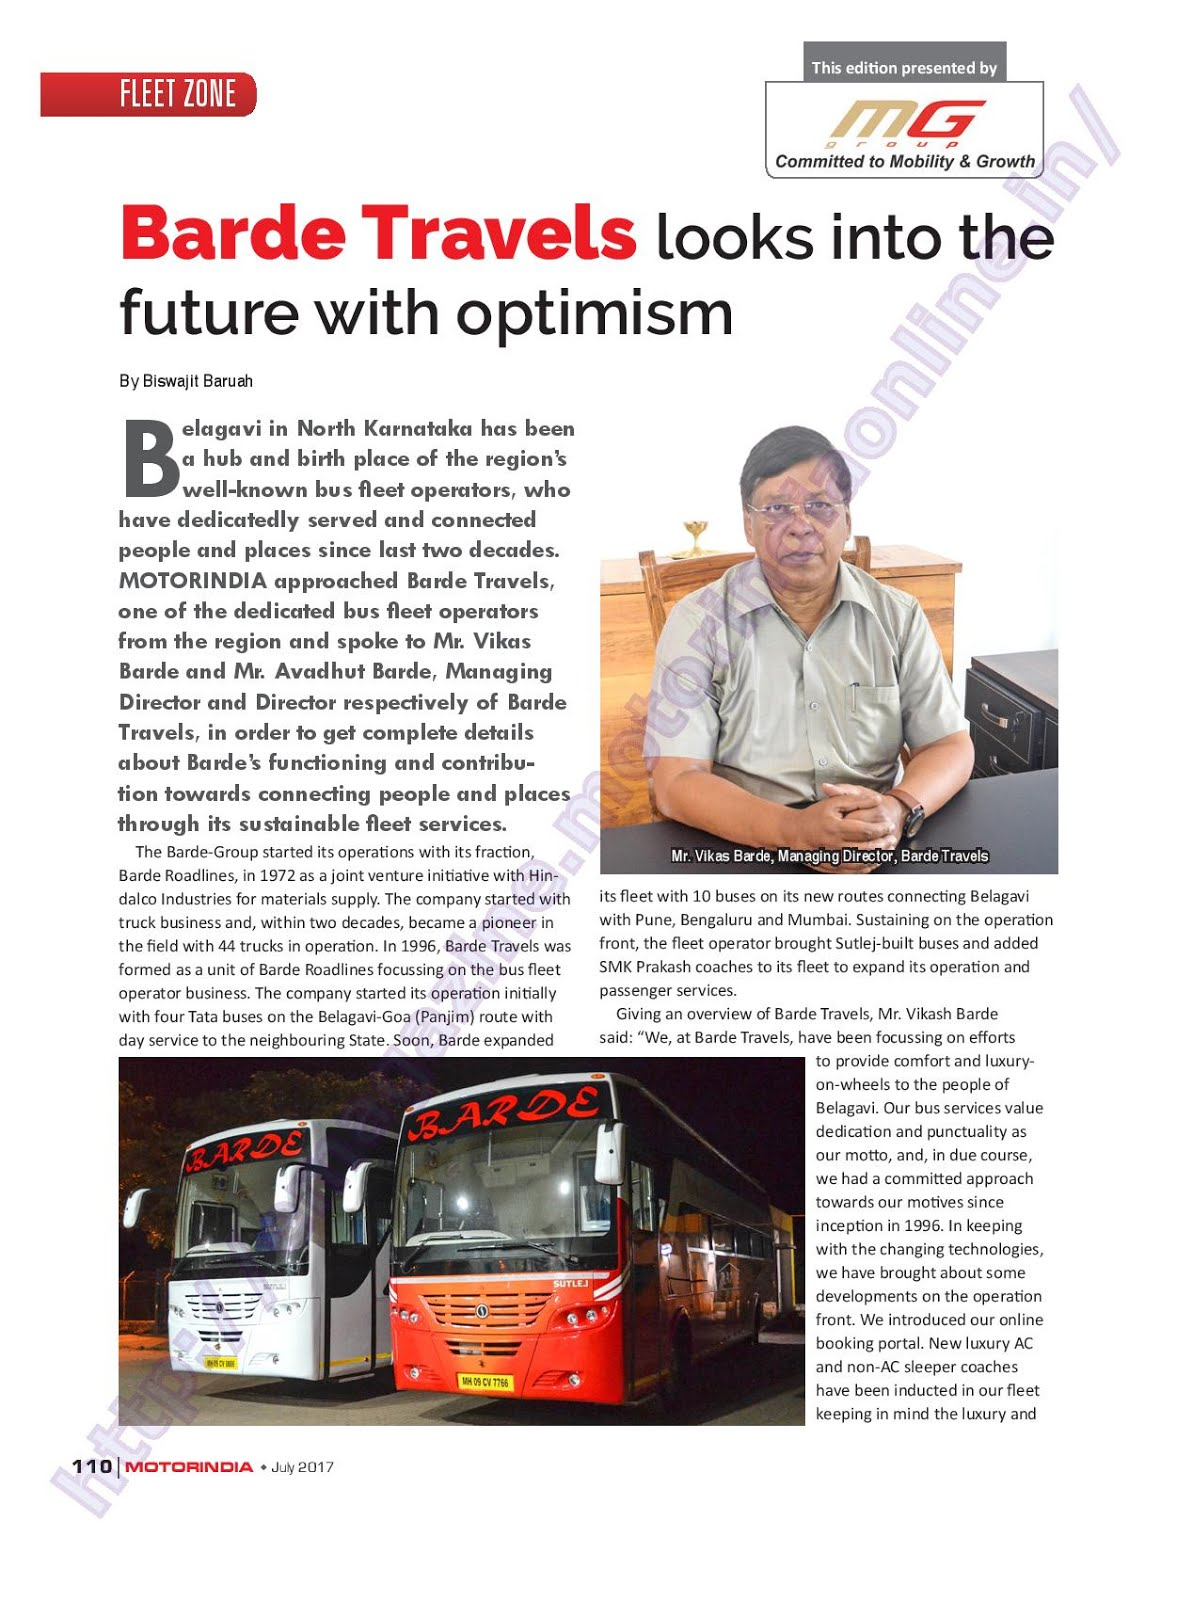 MOTOR INDIA ARTICLE 15 : BARDE TRAVELS